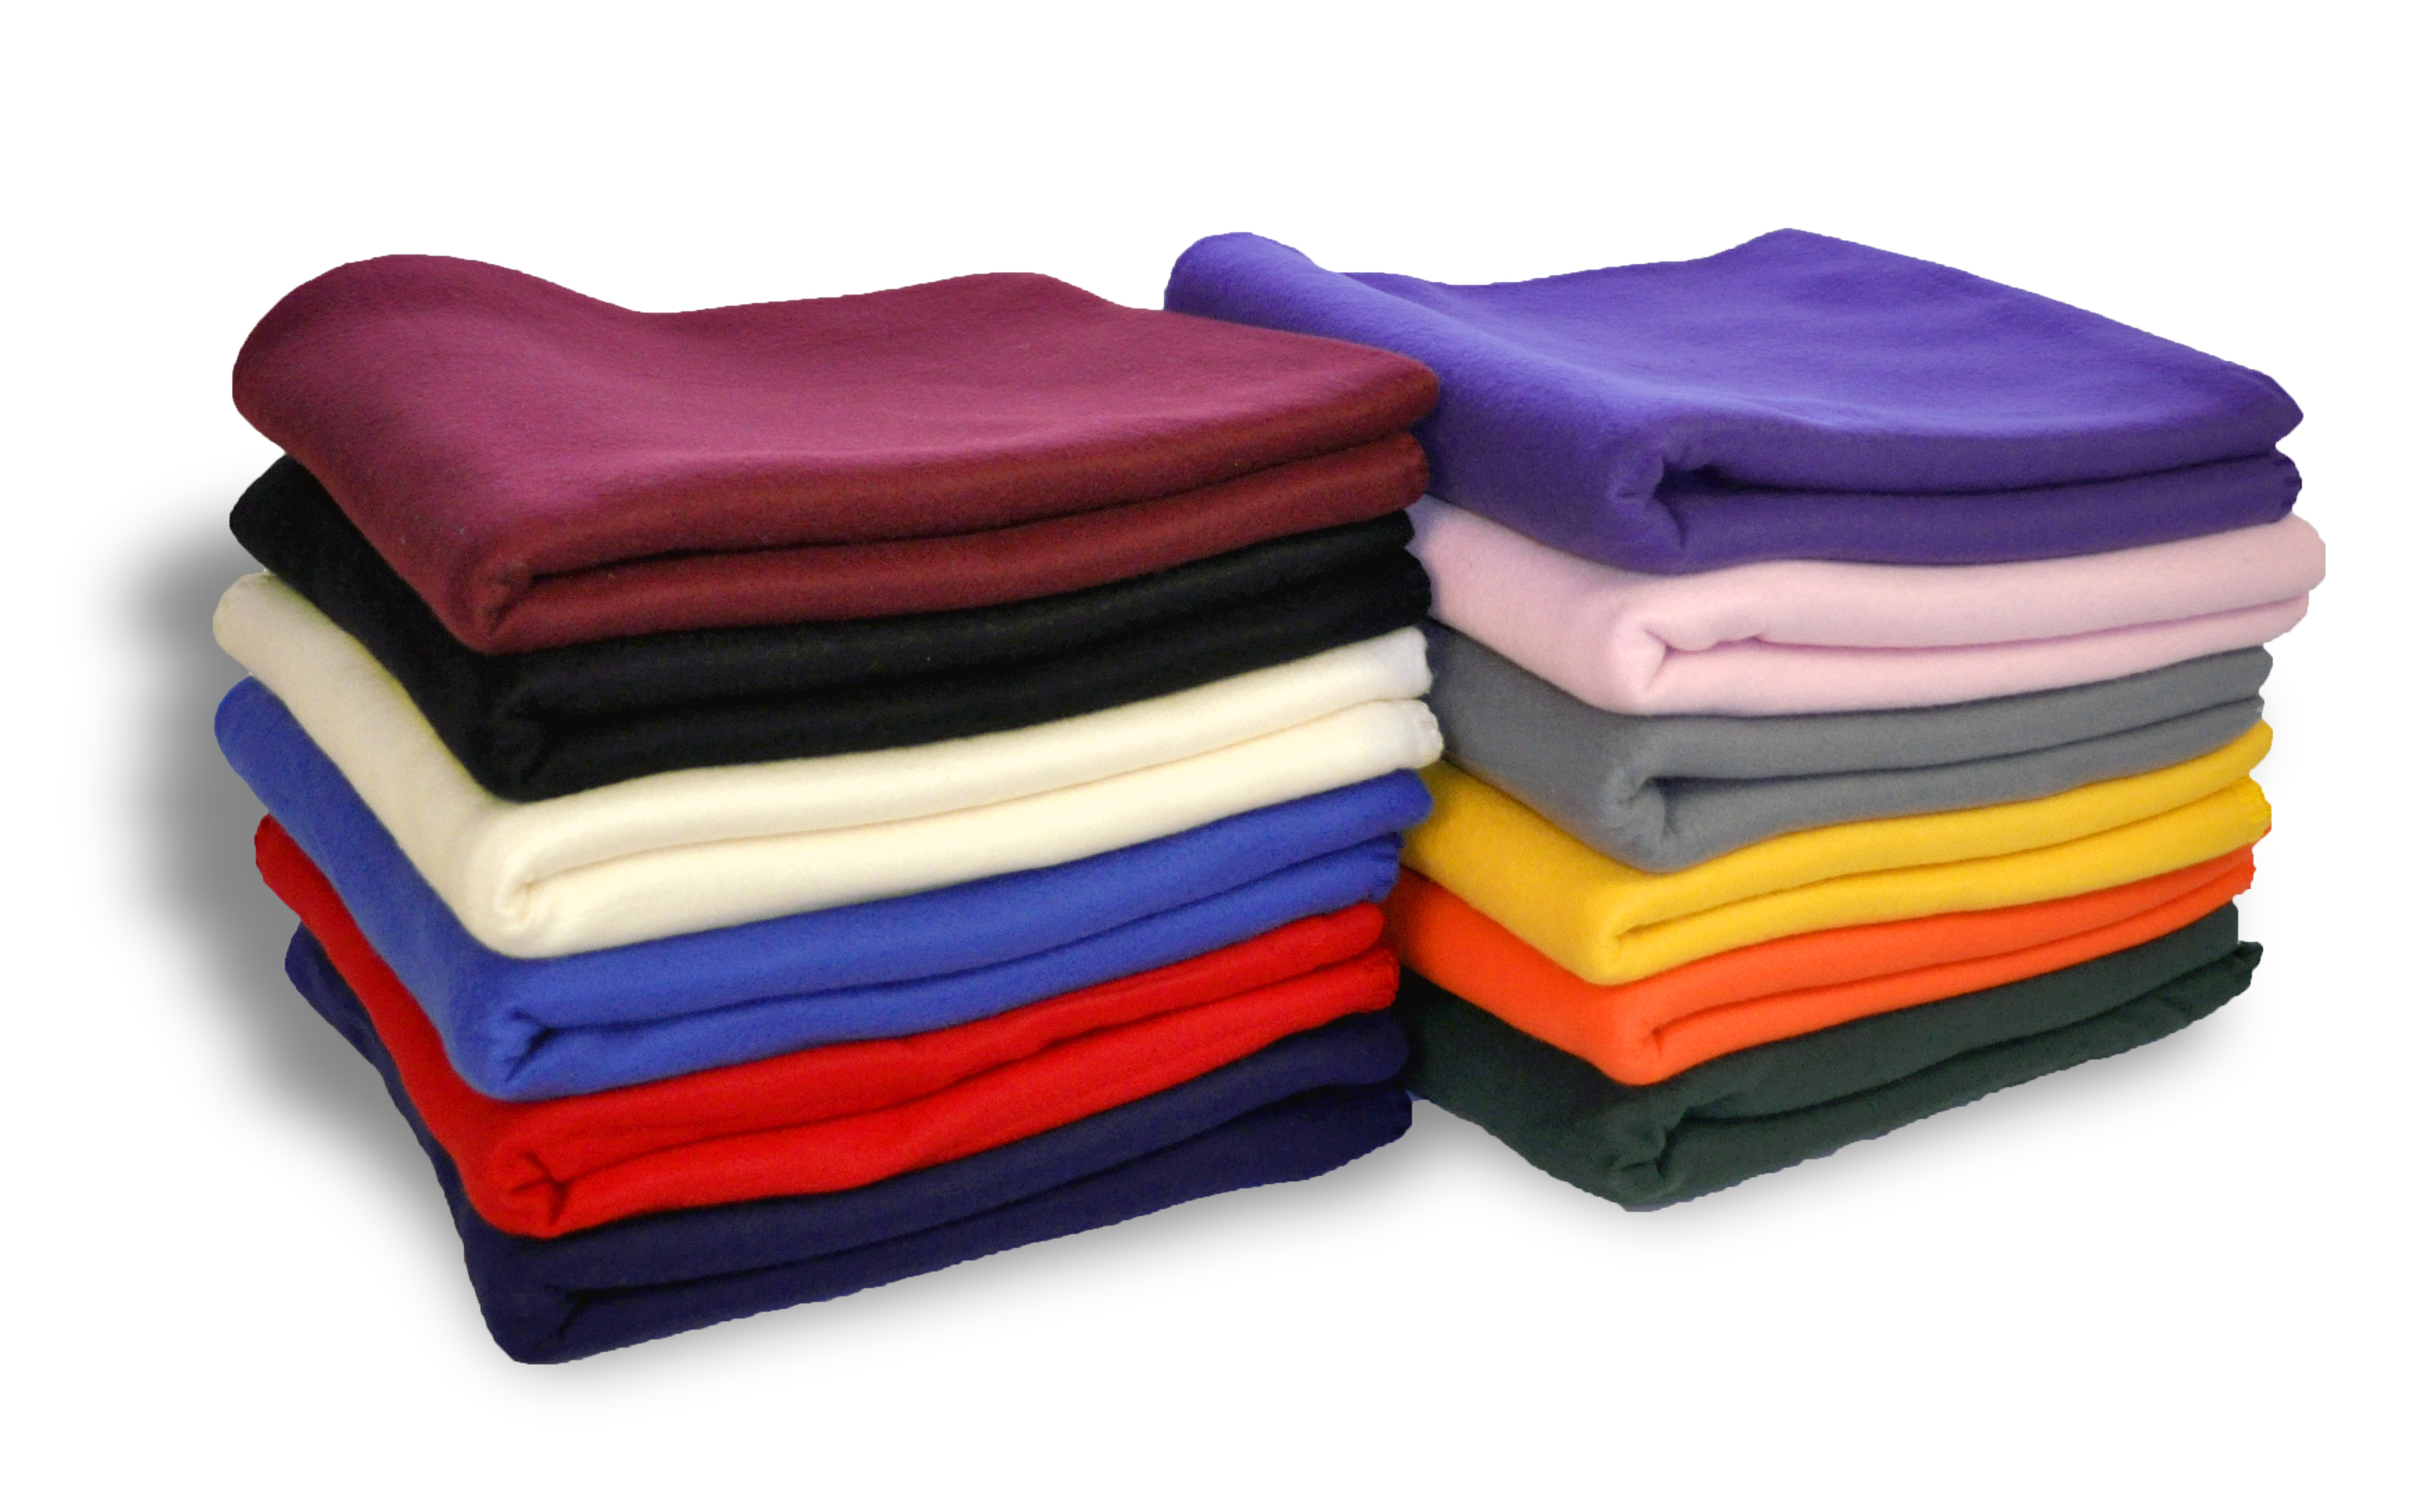 EMBROIDERED 100% Polyester Promotional Fleece 50 x 60 Pill Resistant, 200 gsm 36 pcs per case